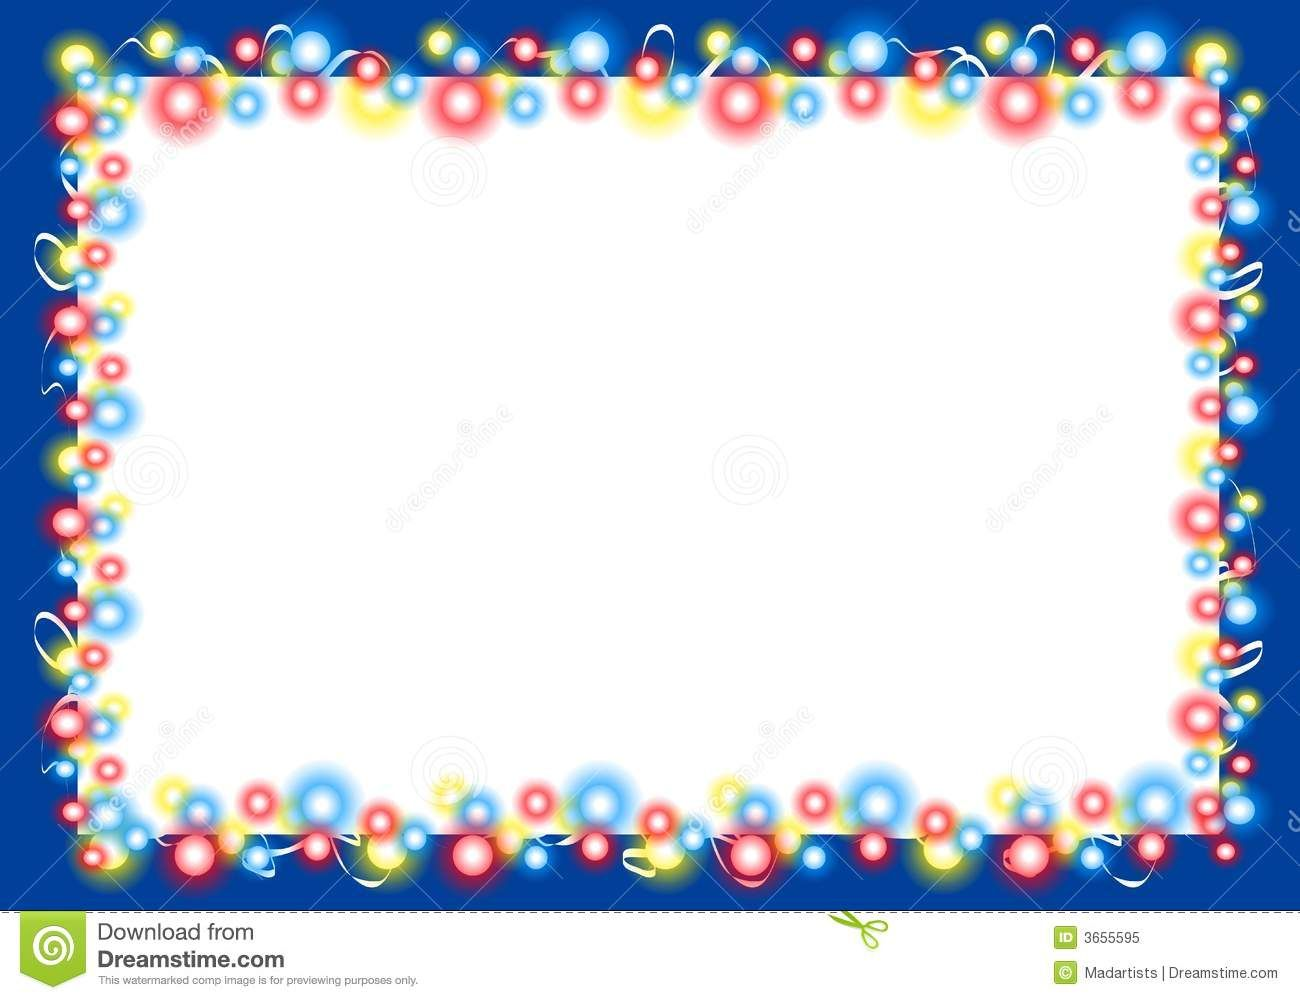 Christmas Lights Border Frame 2 Christmas Lights Wallpaper Christmas Photo Frame Christmas Lights